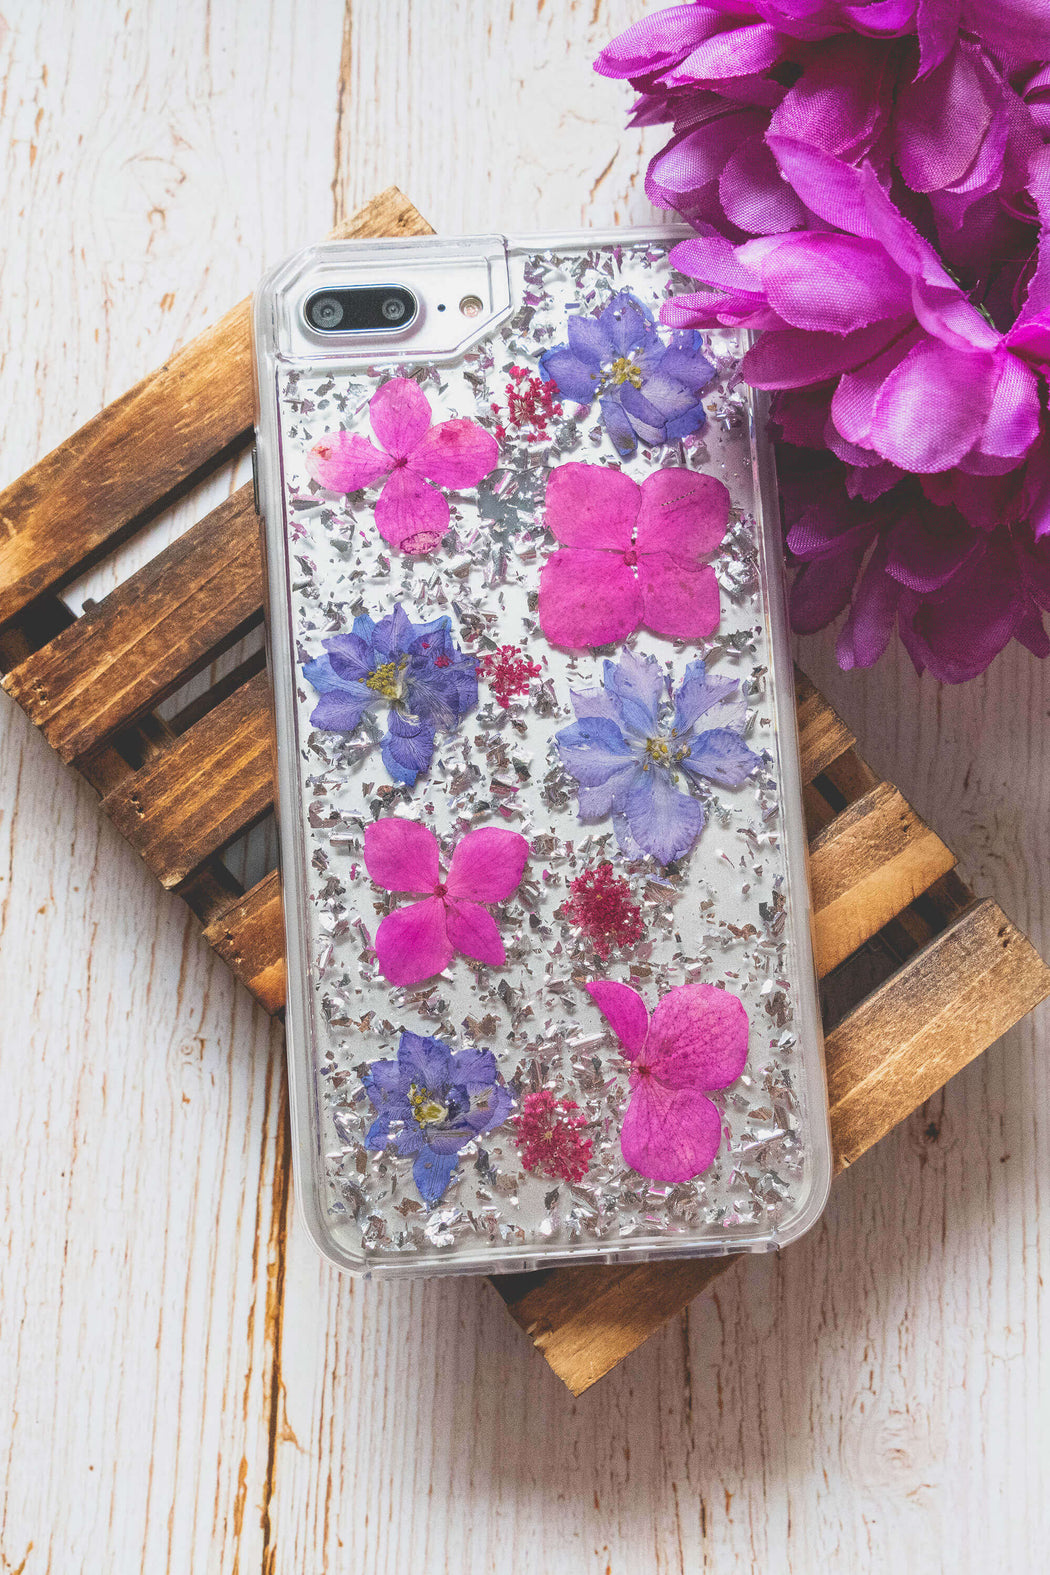 pressed flower iphone case cute protective anti drop bumper silver foil glitter lavender floral neverland floralfy